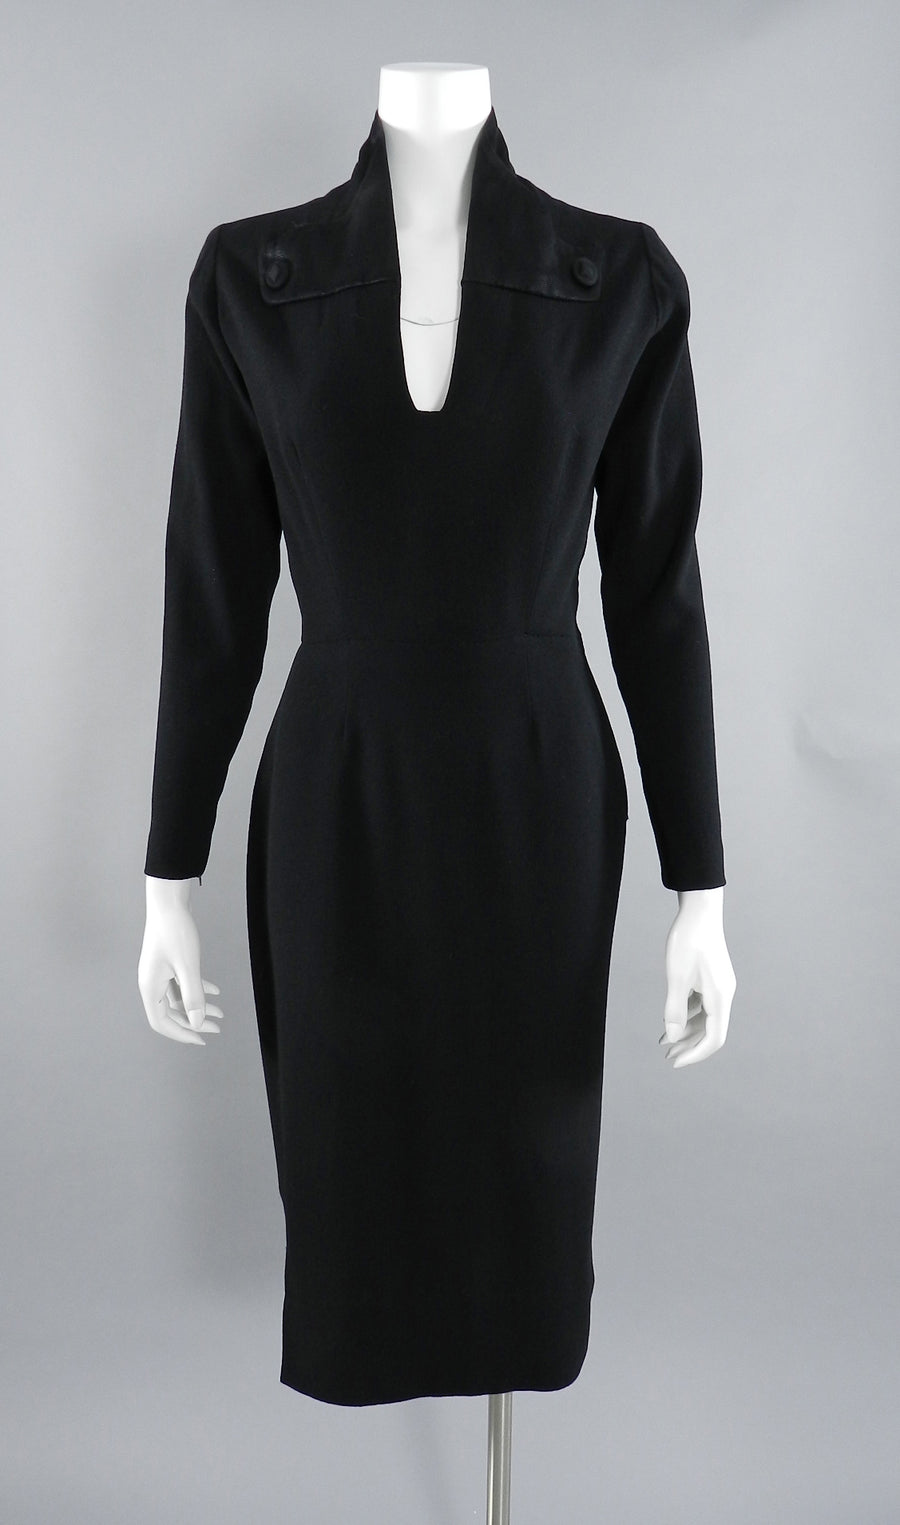 Pierre Balmain 1950's Haute Couture Black Wool Dress